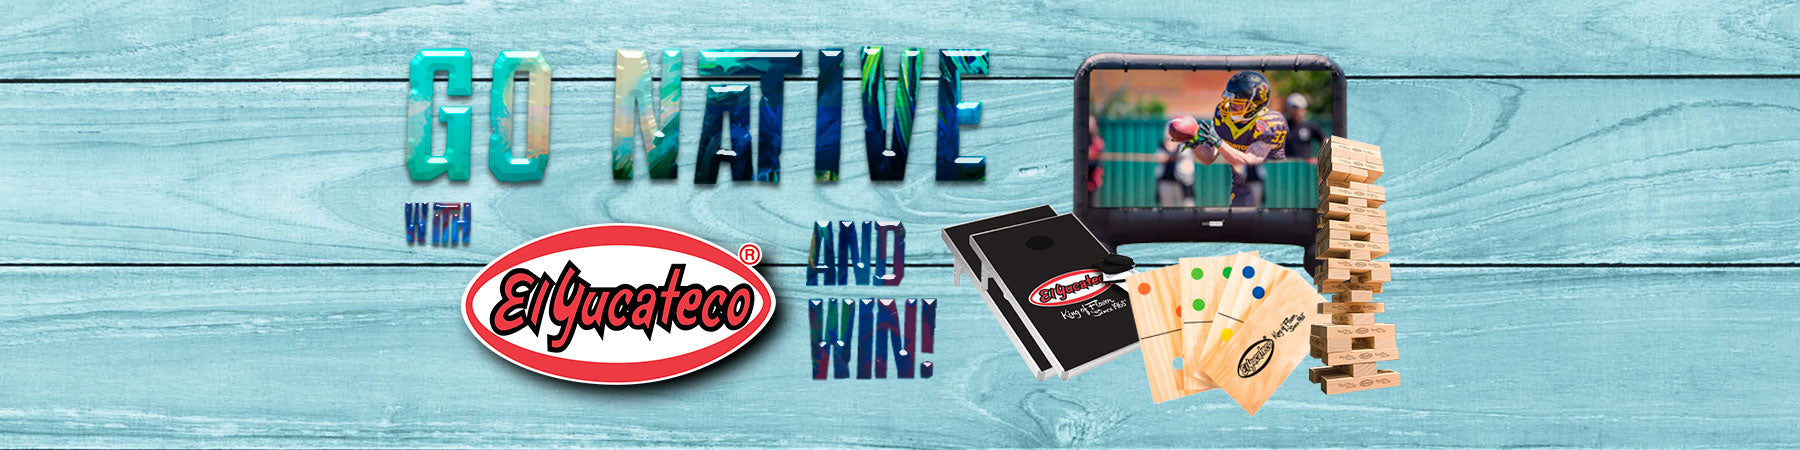 Go Native Sweepstakes by El Yucateco Hot Sauce with prize packs including backyard theatre, giant jenga sets, giant dominos, and cornhole sets